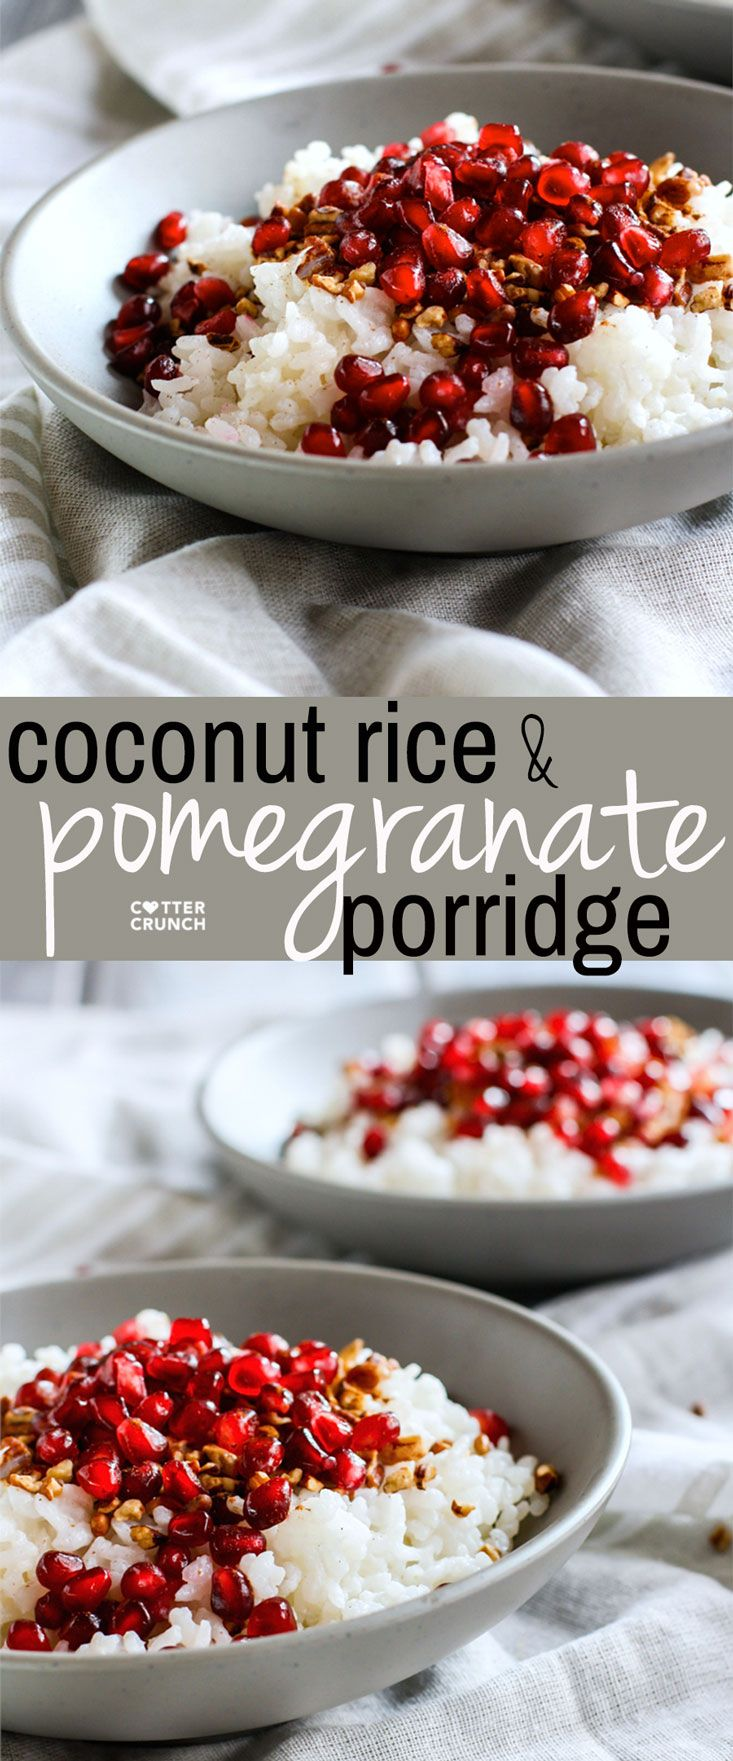 Coconut Rice and Pomegranate Porridge! A nourishing gluten free and dairy free breakfast bowl made with jasmine rice, coconut milk or cream, cinnamon, maple syrup, nuts, and cinnamon. We call this the performance carb porridge because of the budget friendly jasmine rice which makes great fuel when combined with other nutrient dense foods!